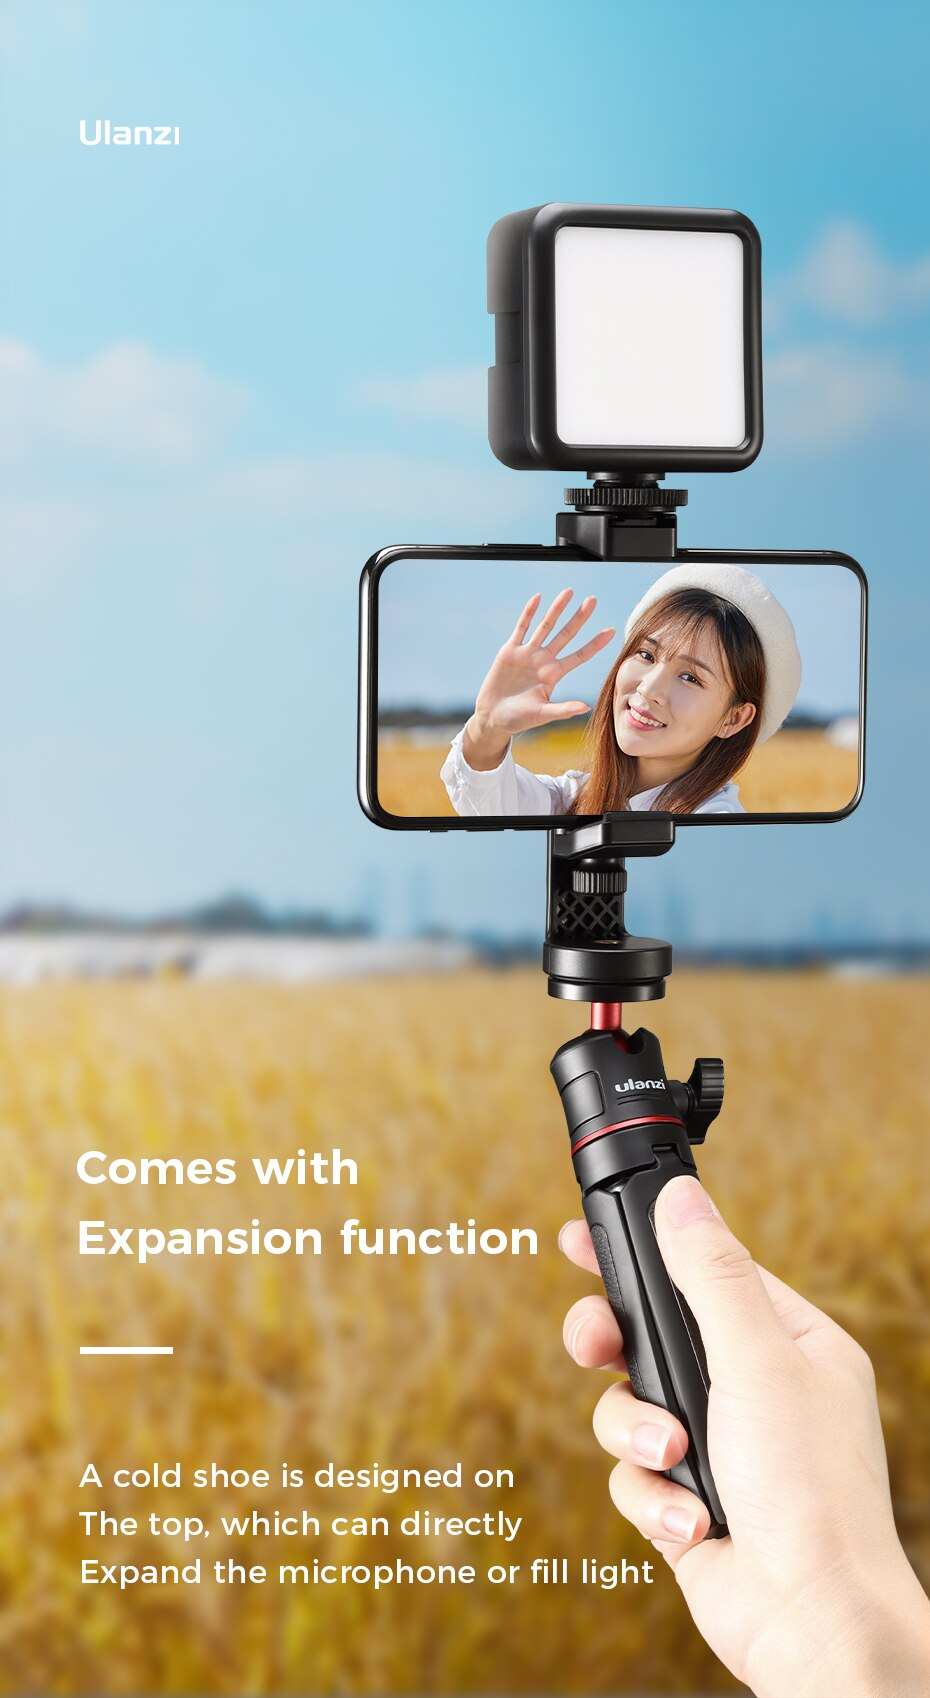 Ha461195dc4b34d04a94158ead0af2706g - Ulanzi ST-17 Universal Smartphone Clip Mount Holder Cold Shoe Vlog Tripod Mount Vertical Shooting for Huawei iPhone Android